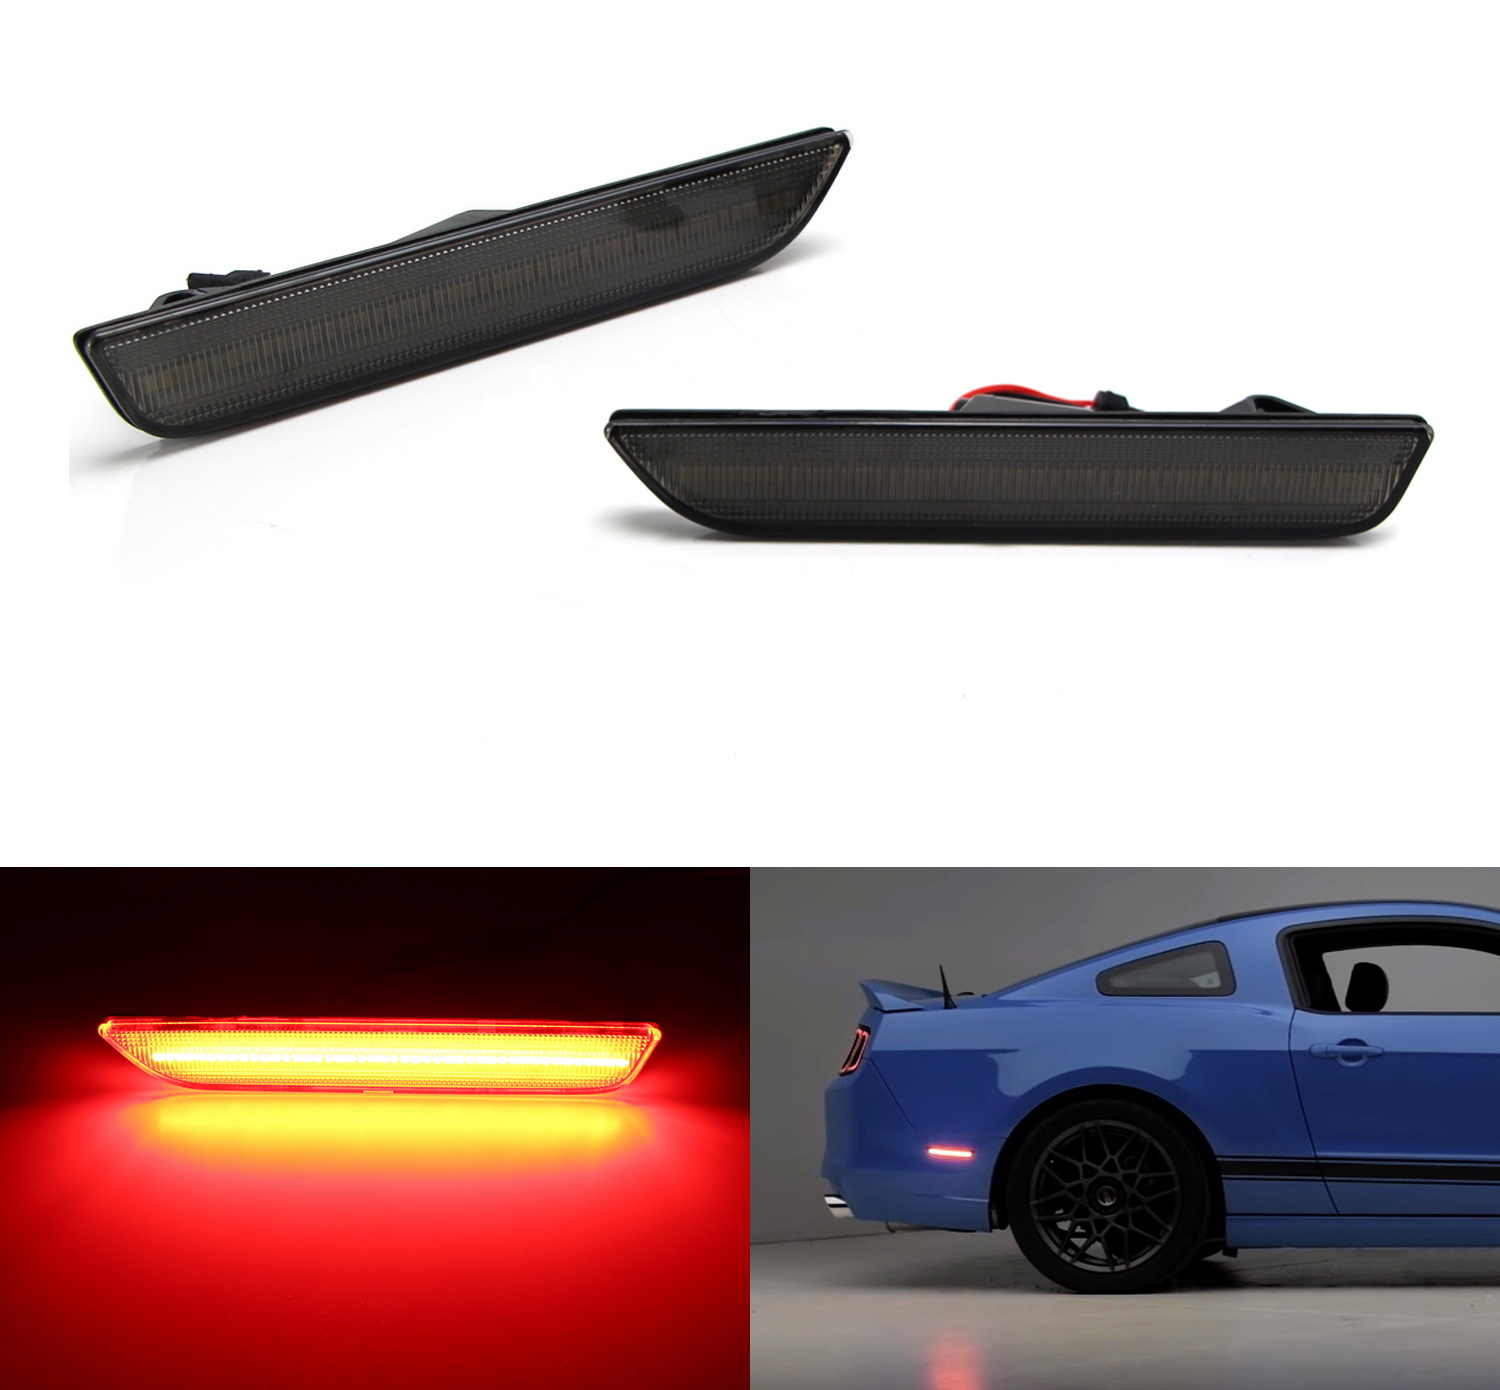 iJDMTOY (2) Smoked Lens LED Rear Side Marker Lamps with 45-SMD Red LED Lights For 2010-2014 Ford Mustang